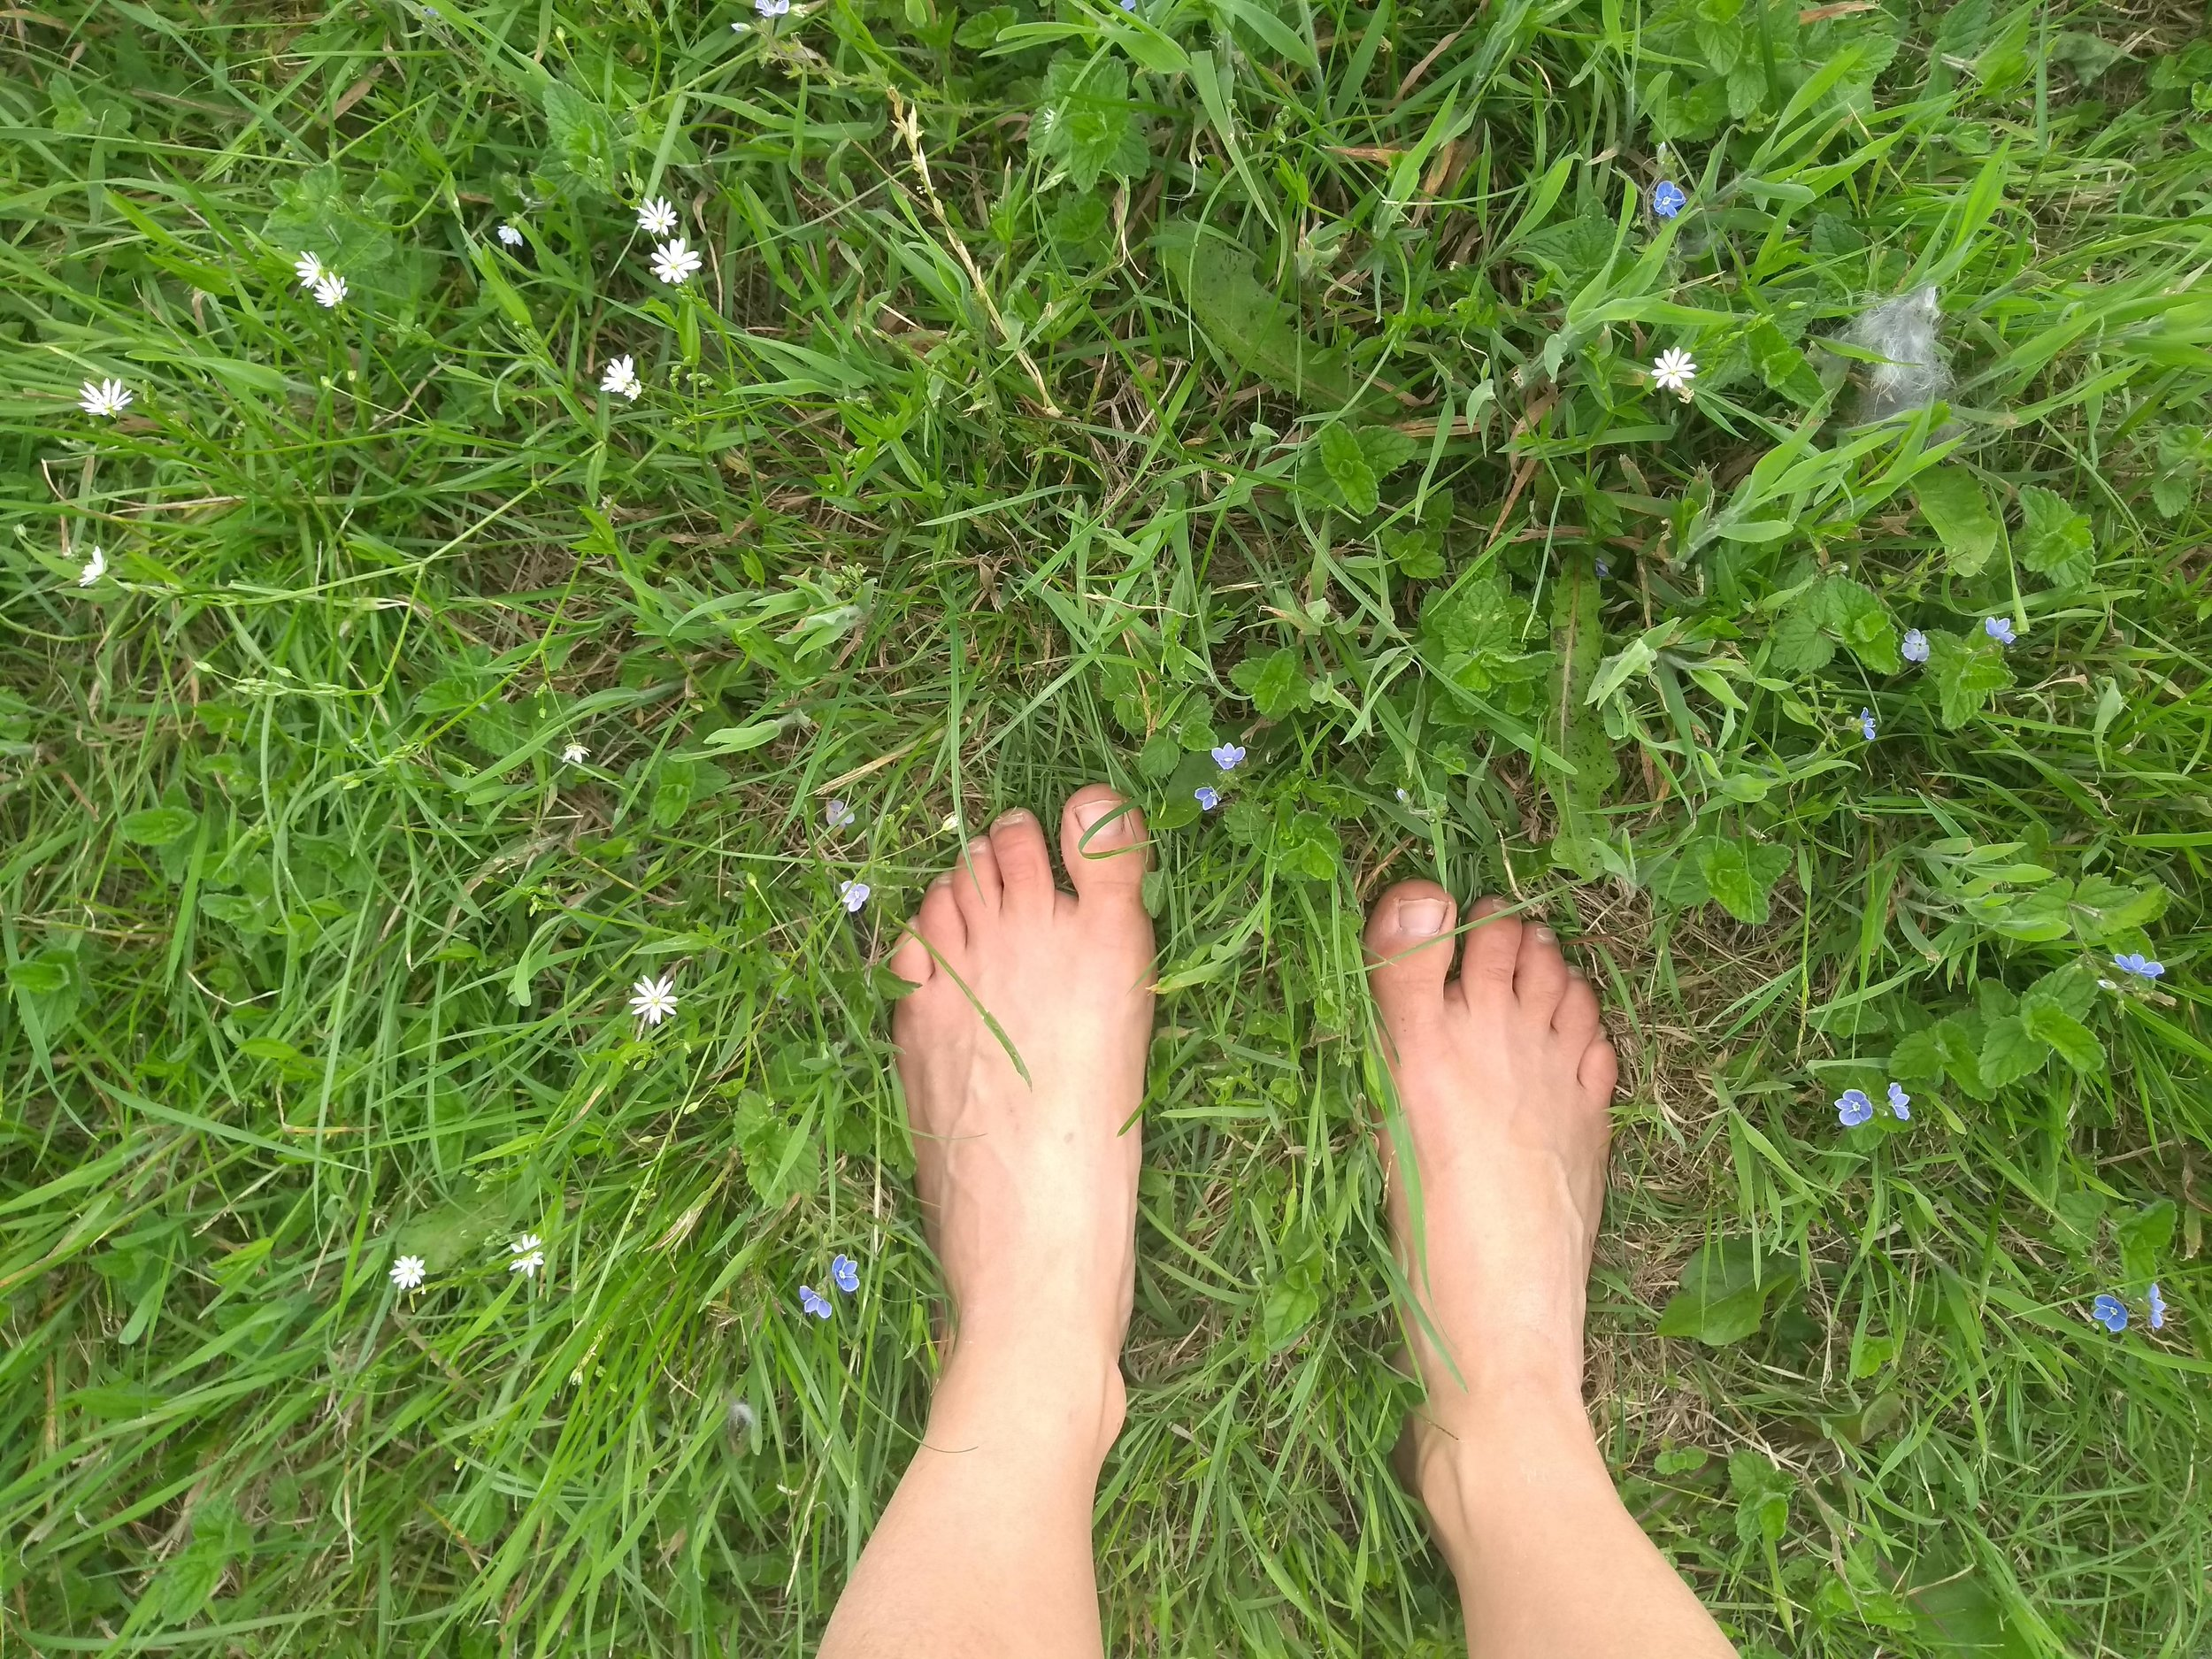 Barefoot in the meadow